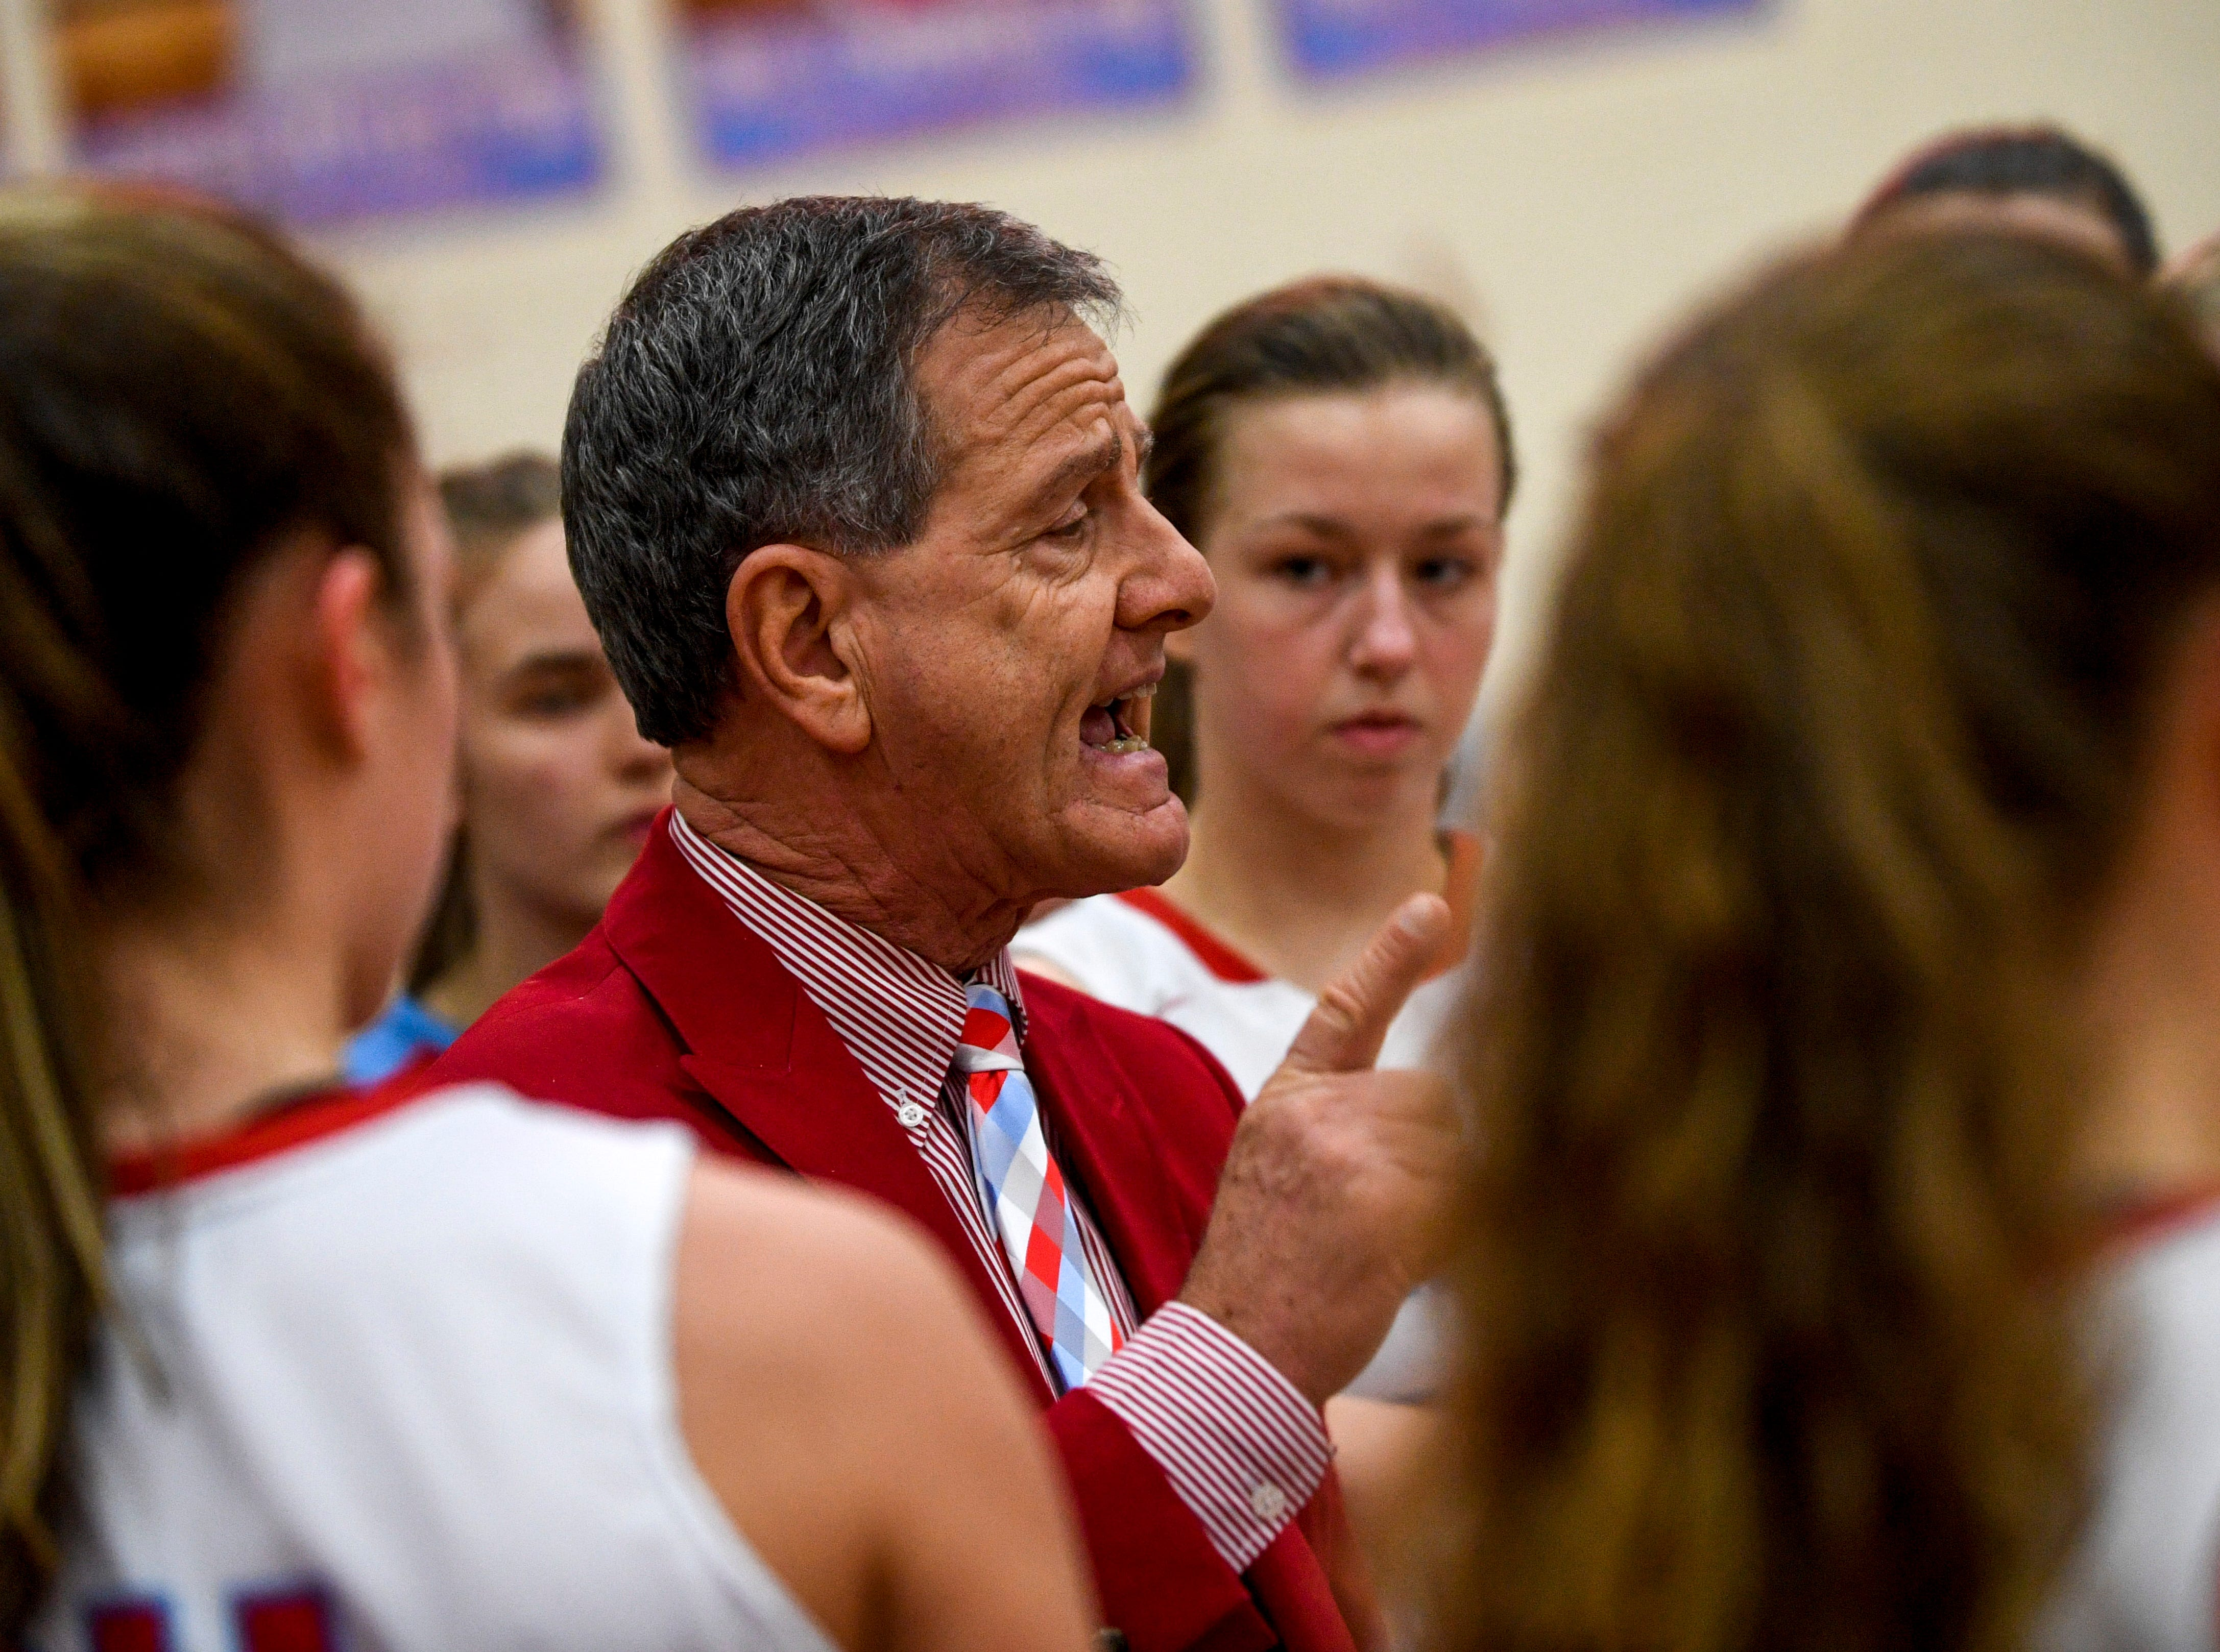 Gibson County head coach Mitch Wilkins speaks to his players in a timeout in a TSSAA girls basketball game between Gibson County and Trinity Christian Academy at Gibson County High School in Dyer, Tenn., on Friday, Jan. 11, 2019.